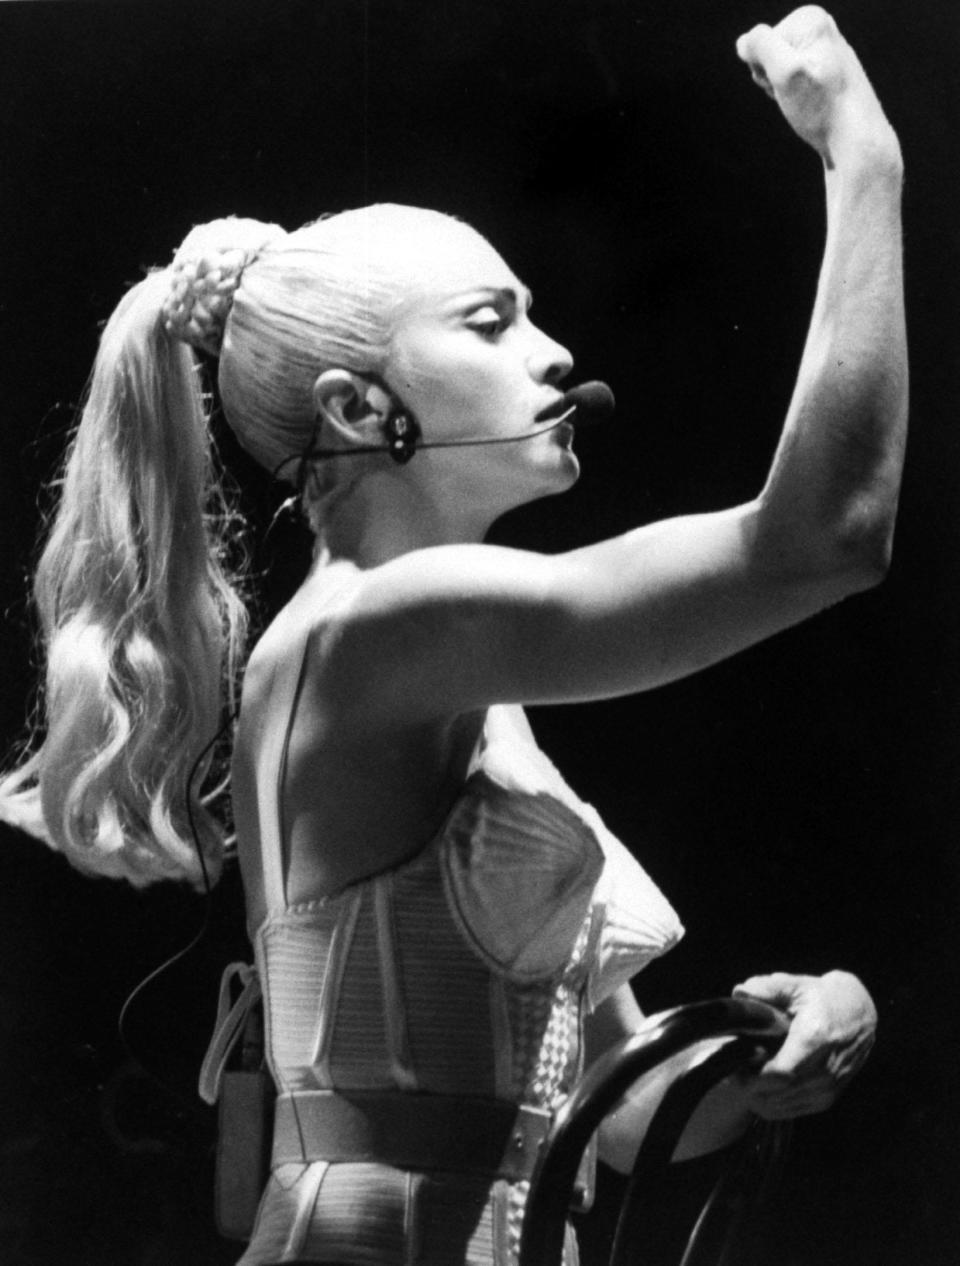 Madonna's iconic cone corset during her 'Blonde Ambition' tour [Photo: Getty]